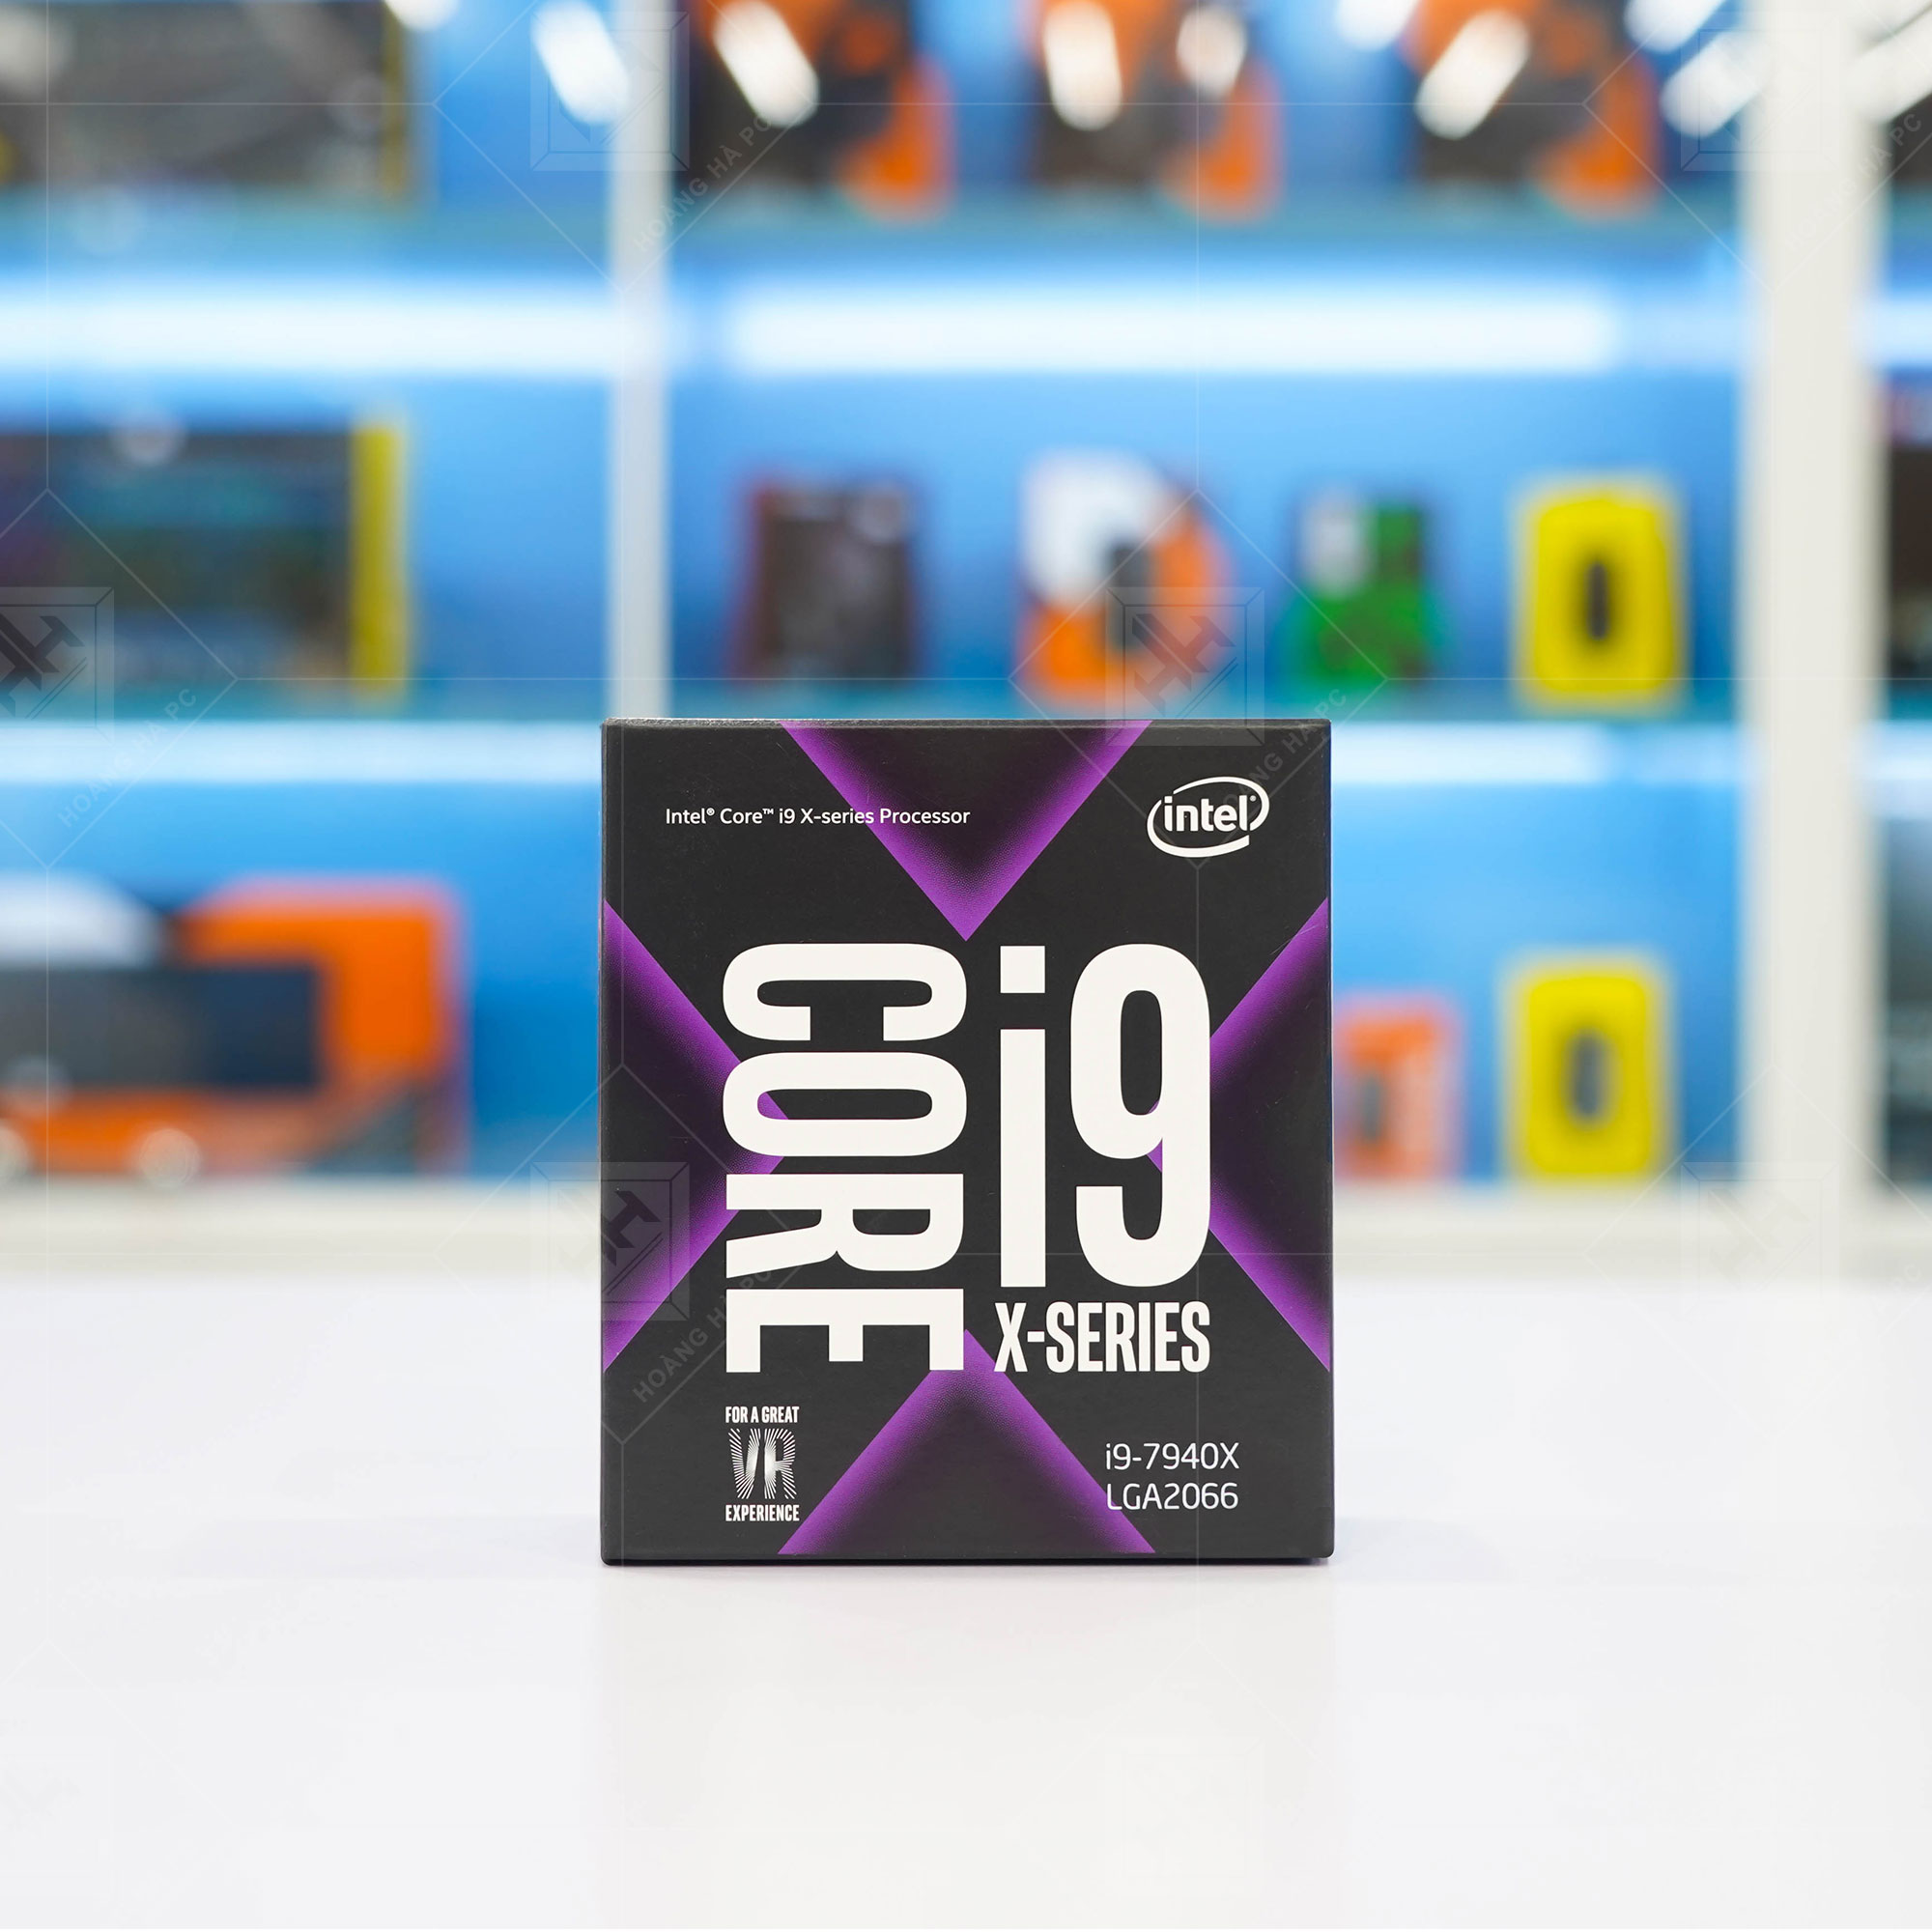 Intel Core i9 - 7940X 3.1 GHz Turbo 4.3 Up to 4.4 GHz / 19.25 MB / 14 Cores, 28 Threads / socket 2066